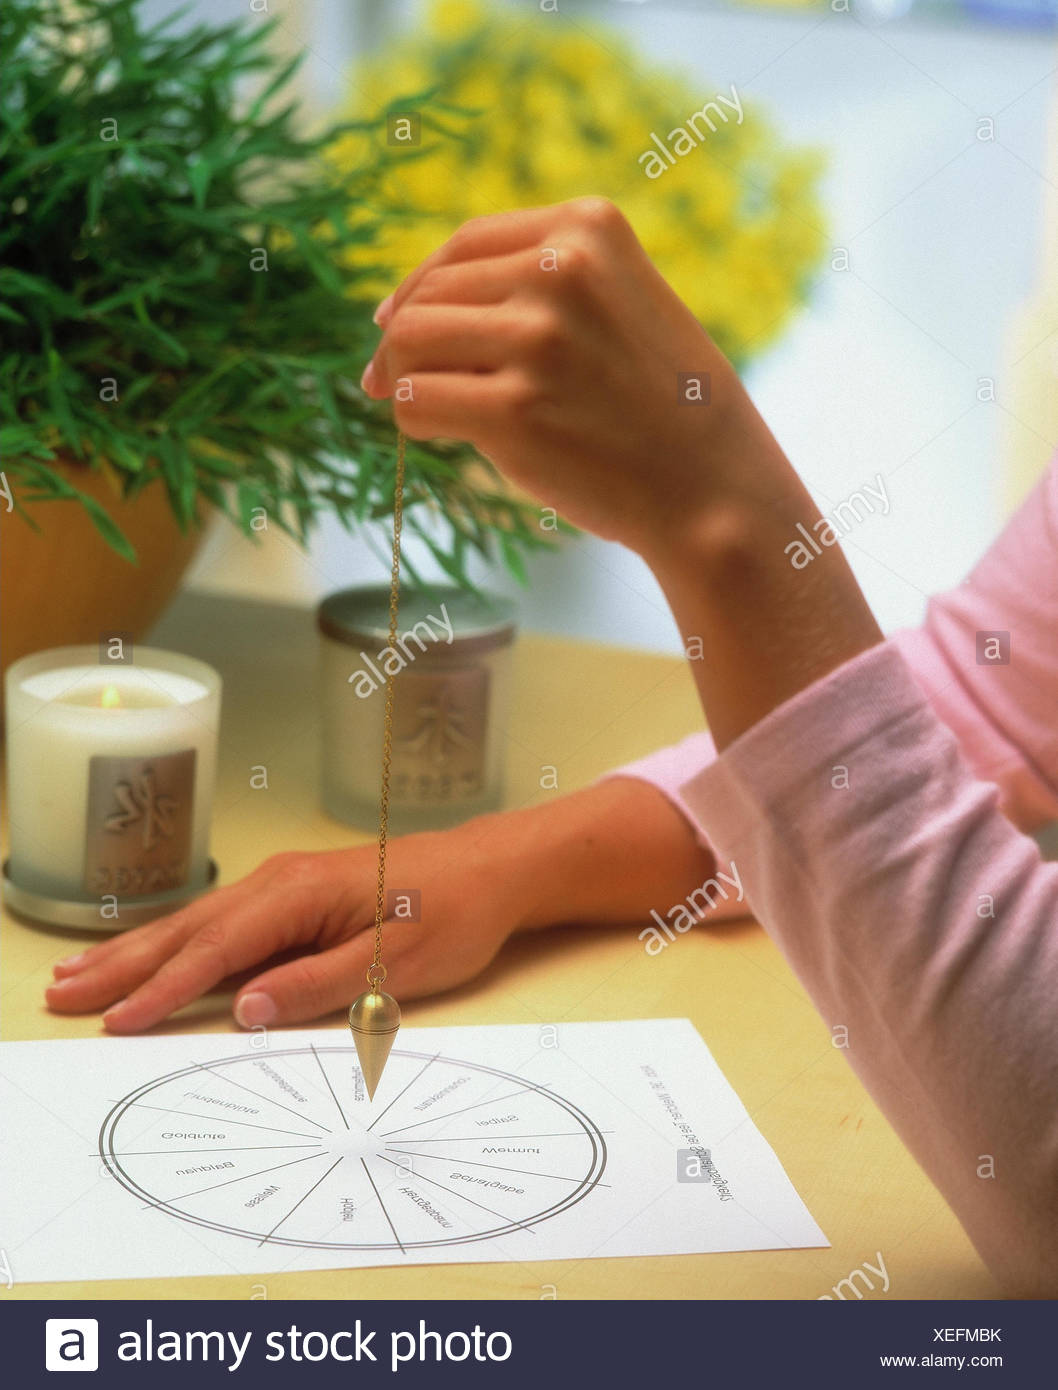 Esotericism, woman, oscillate, detail, occultism, spiritualism, occultism, auspendeln, parapsychology, pendulum deviation, pendulum, siderisches, oracle, standstill, hands, decision, decision help, questioning, occult method, guide, mania, mental dependen - Stock Image